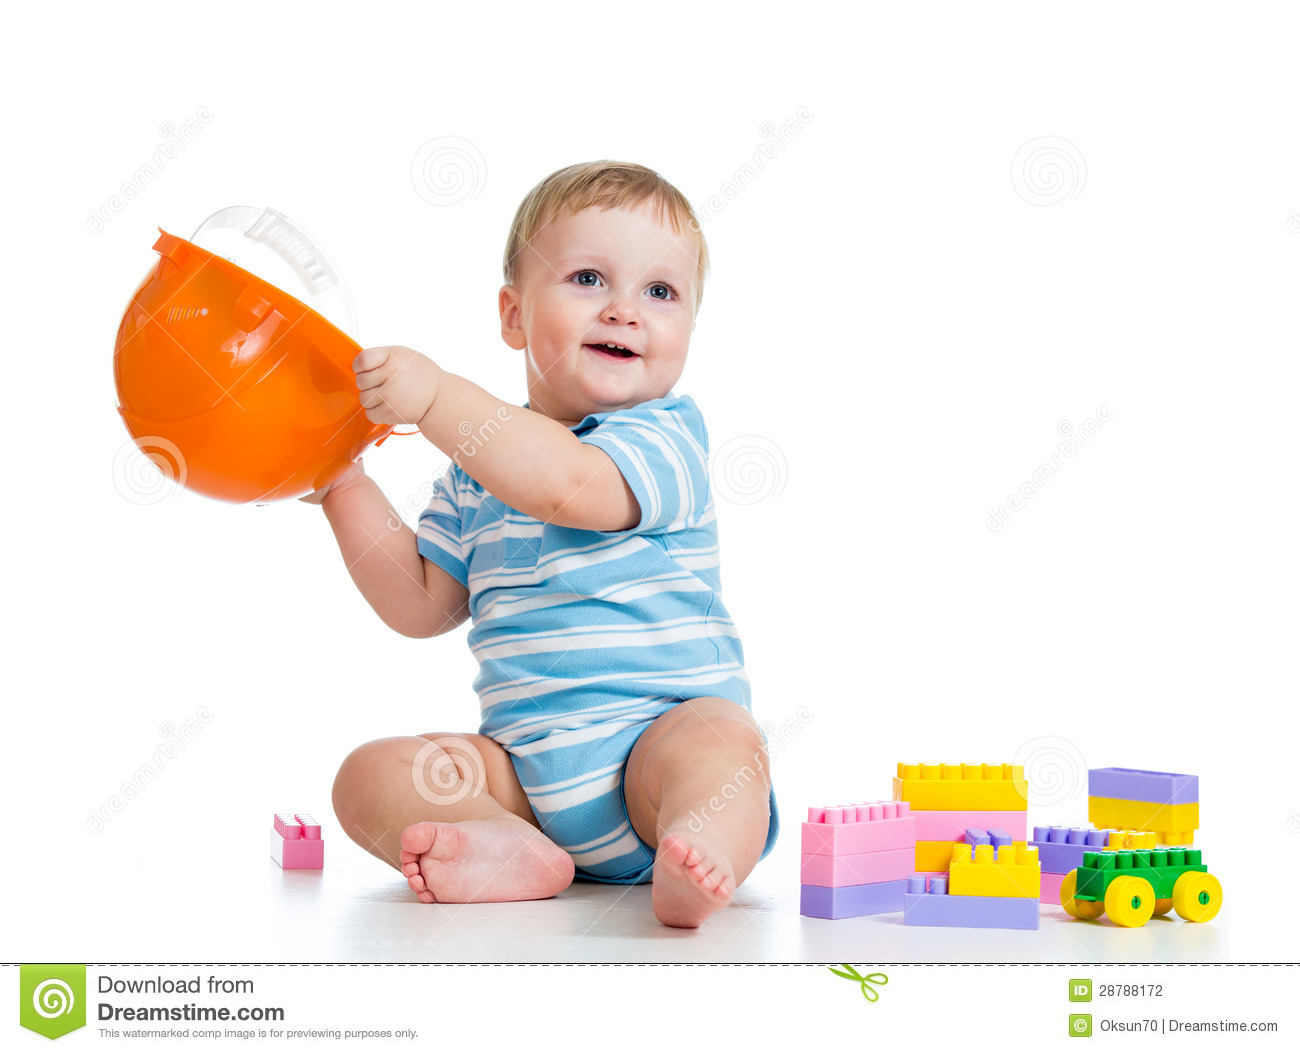 Baby boy playing with building blocks toy